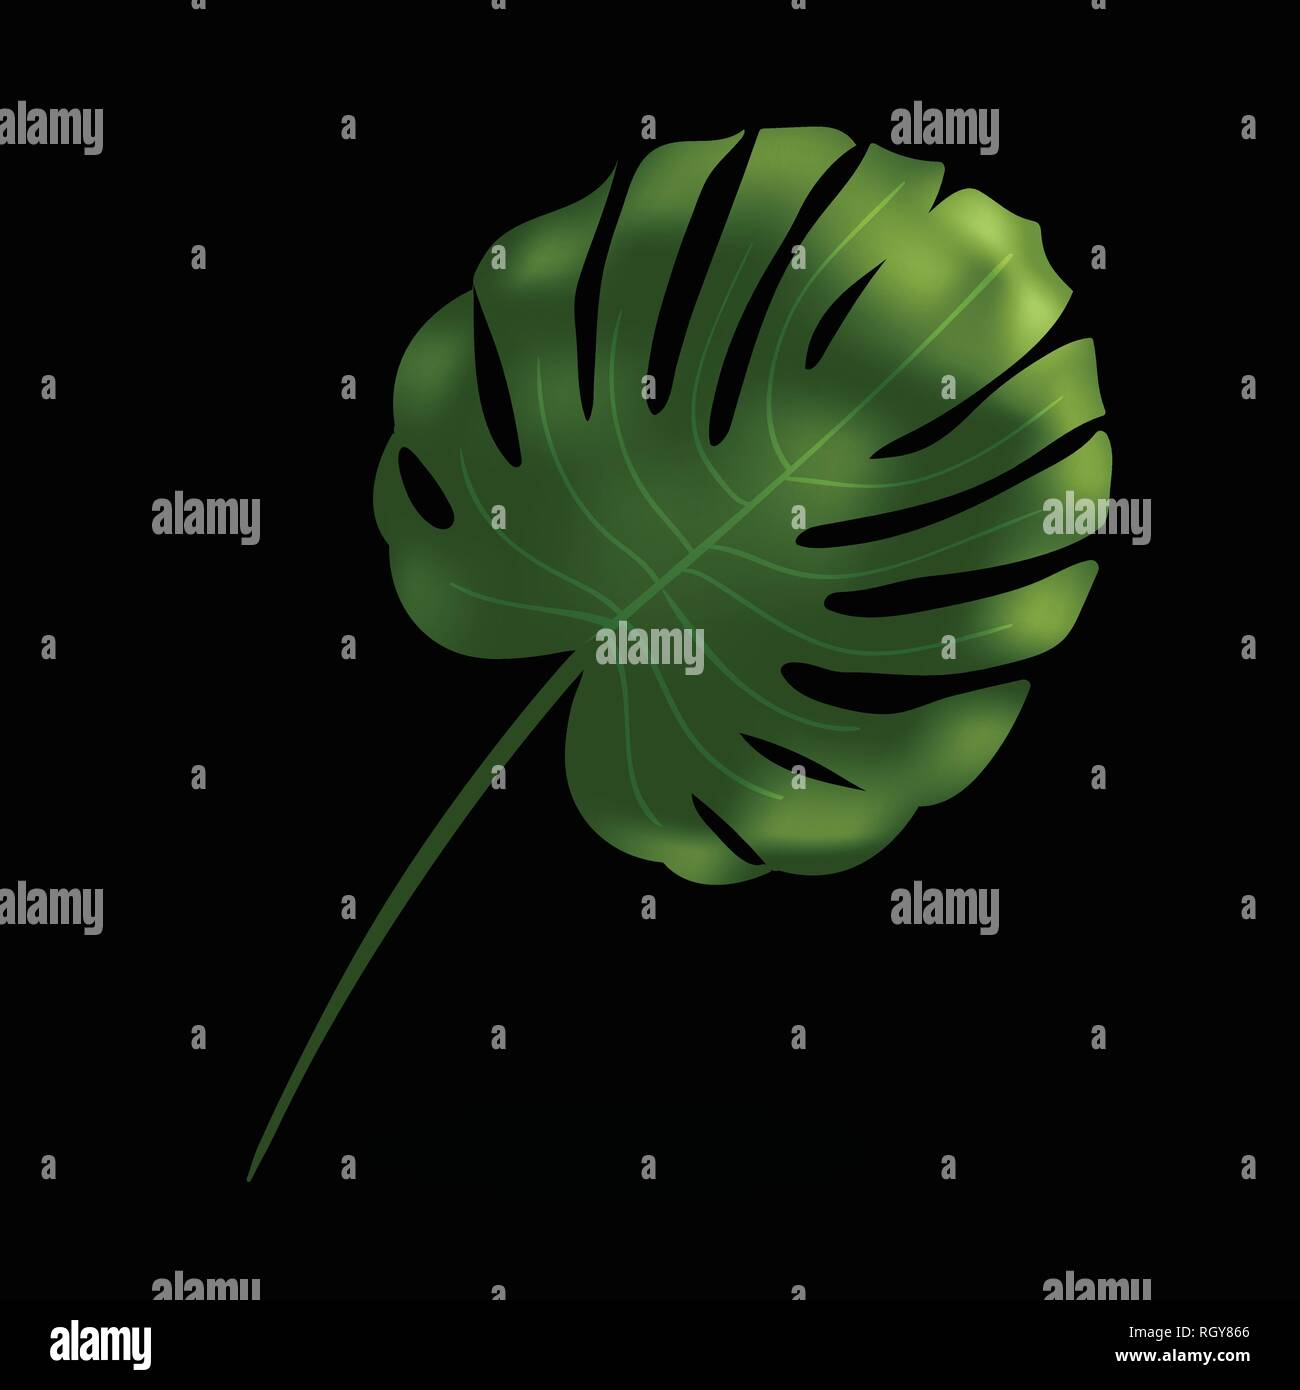 Green monstera leaf. Tropical plant. Realistic vector illustration isolated on black background. Design element for fabrics, invitations, clothes and - Stock Vector